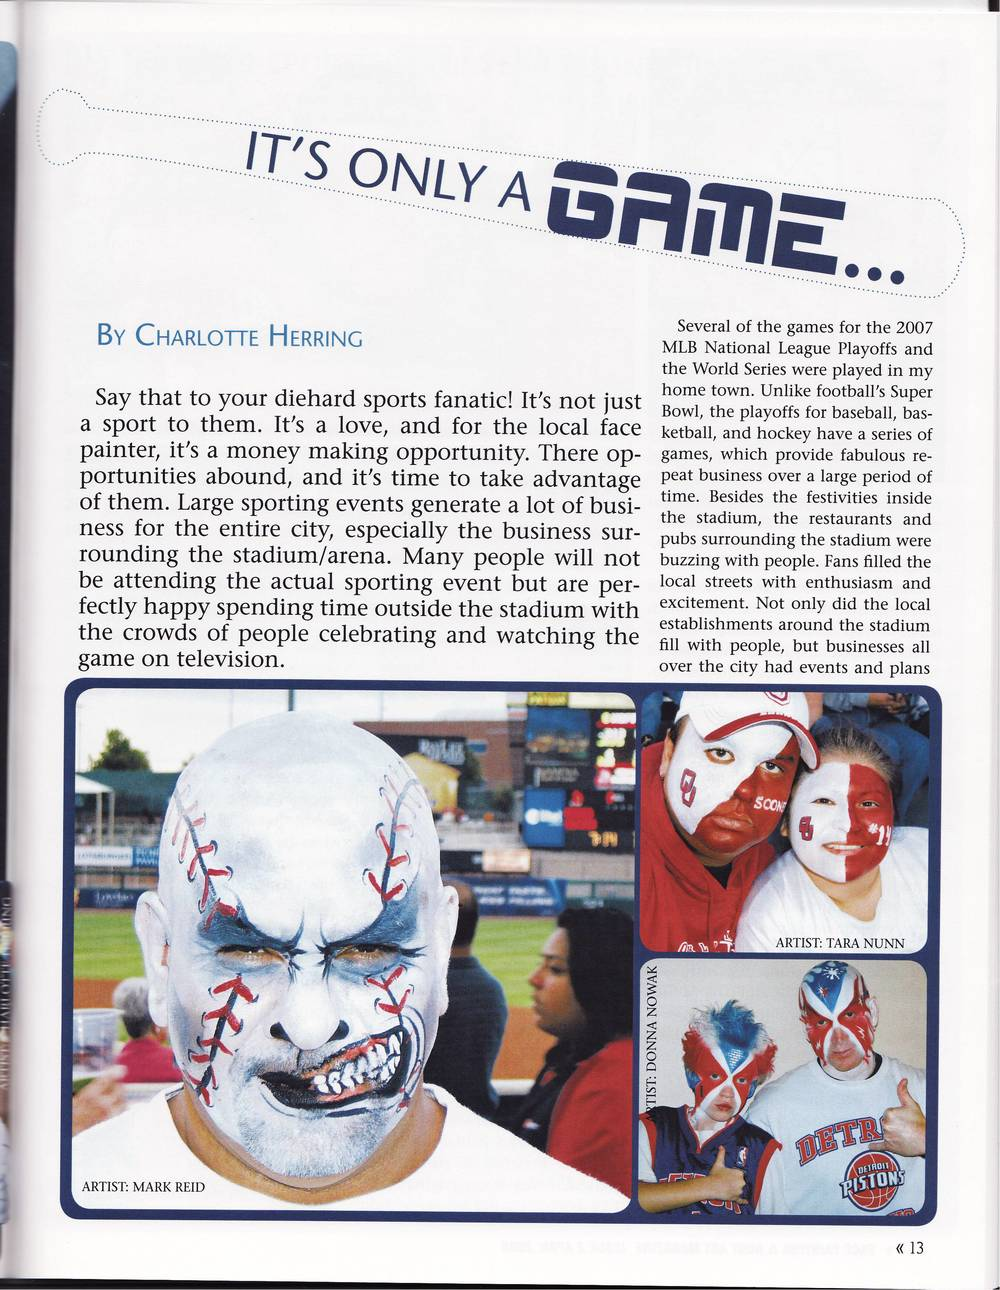 FPBA Magazine Article April 2008 - It's only a game - Page 2.jpg